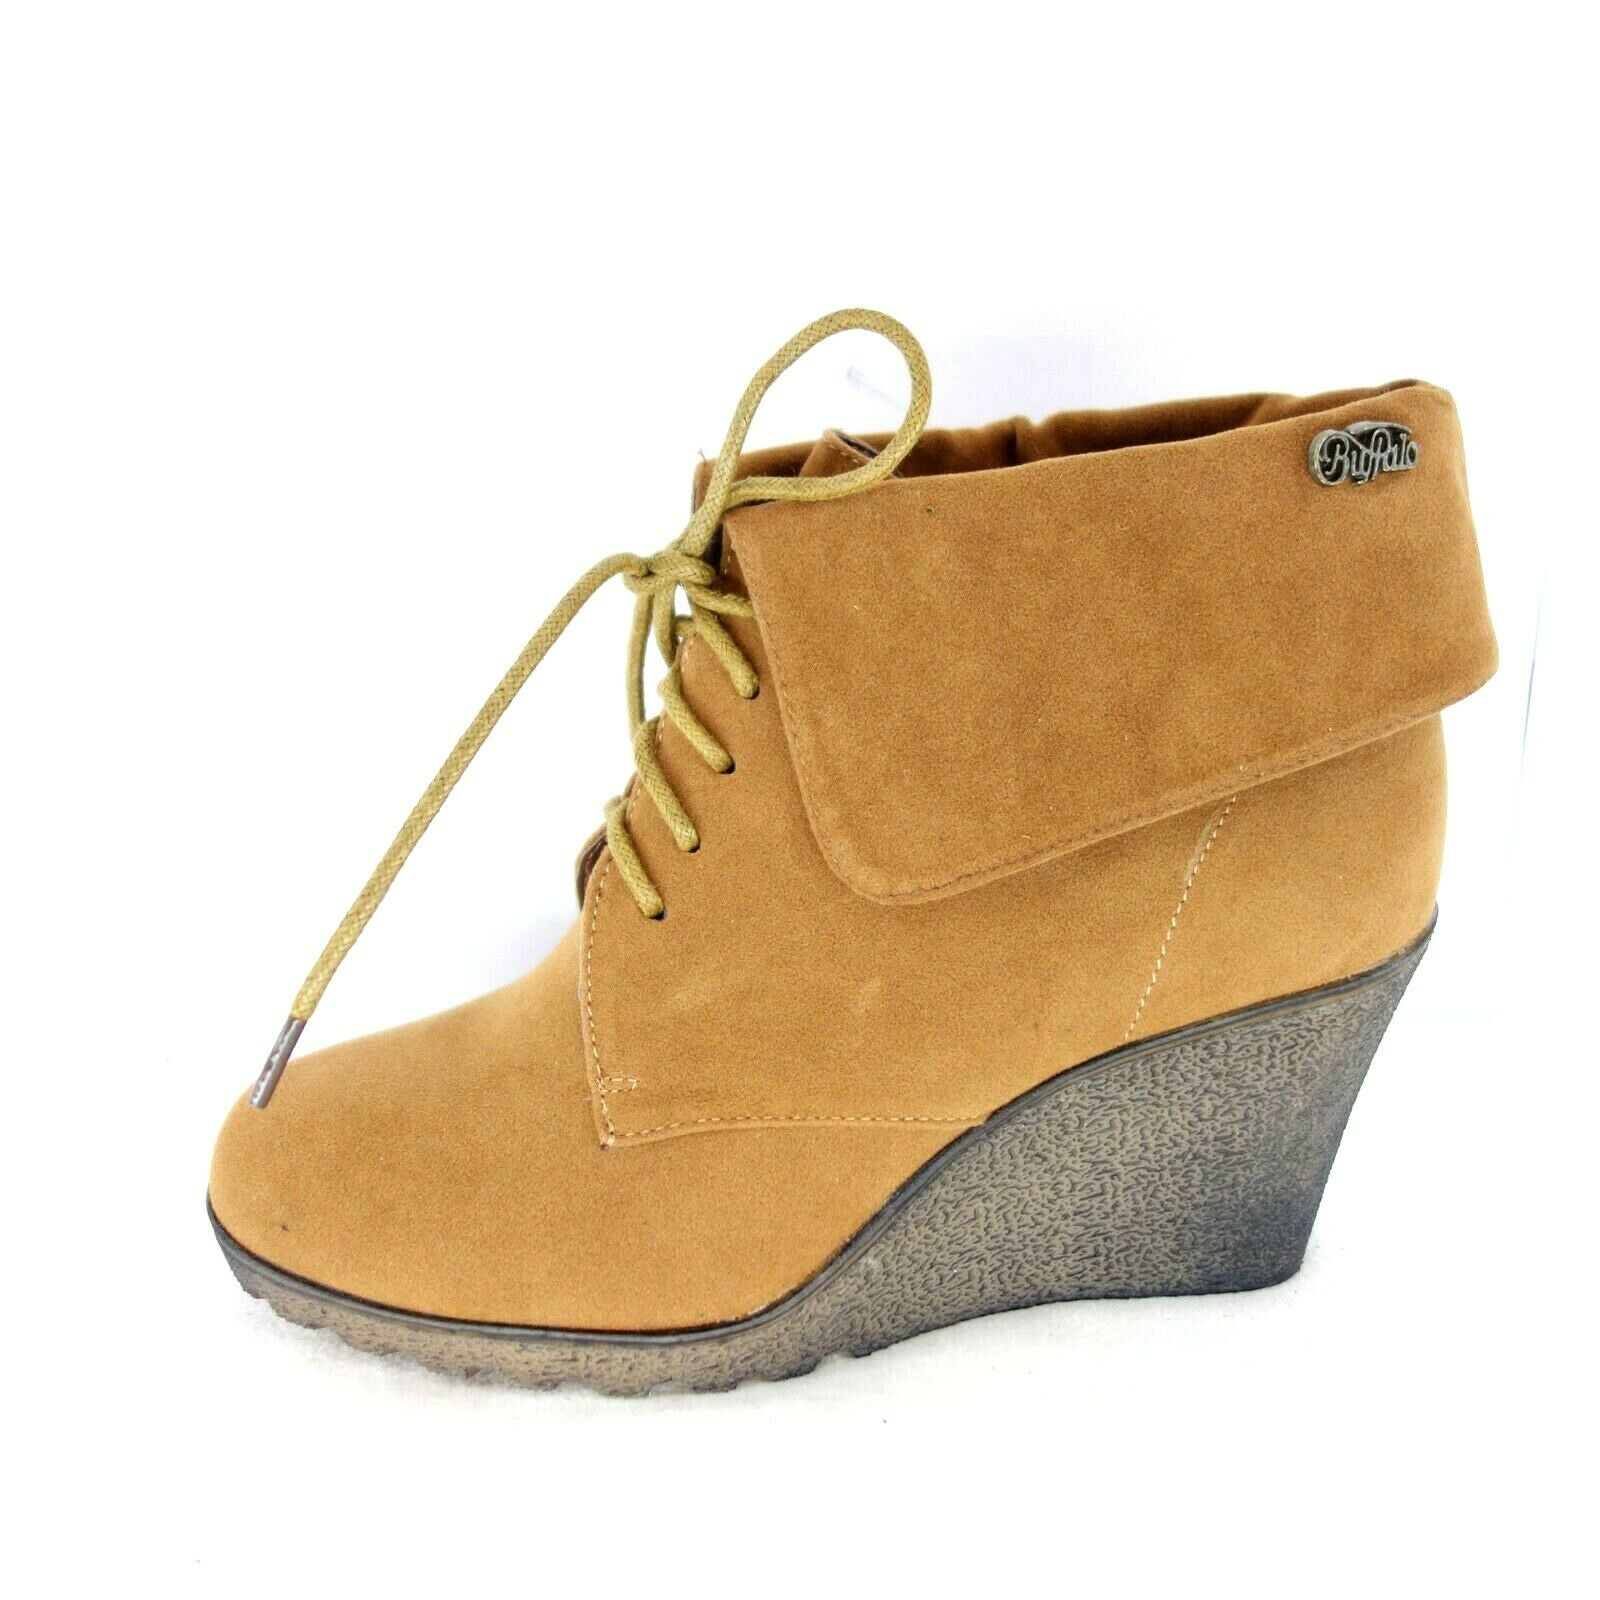 Buffalo Women's Wedge Ankle Boots Size 36 39 41 Suede shoes Brown Np 49 New